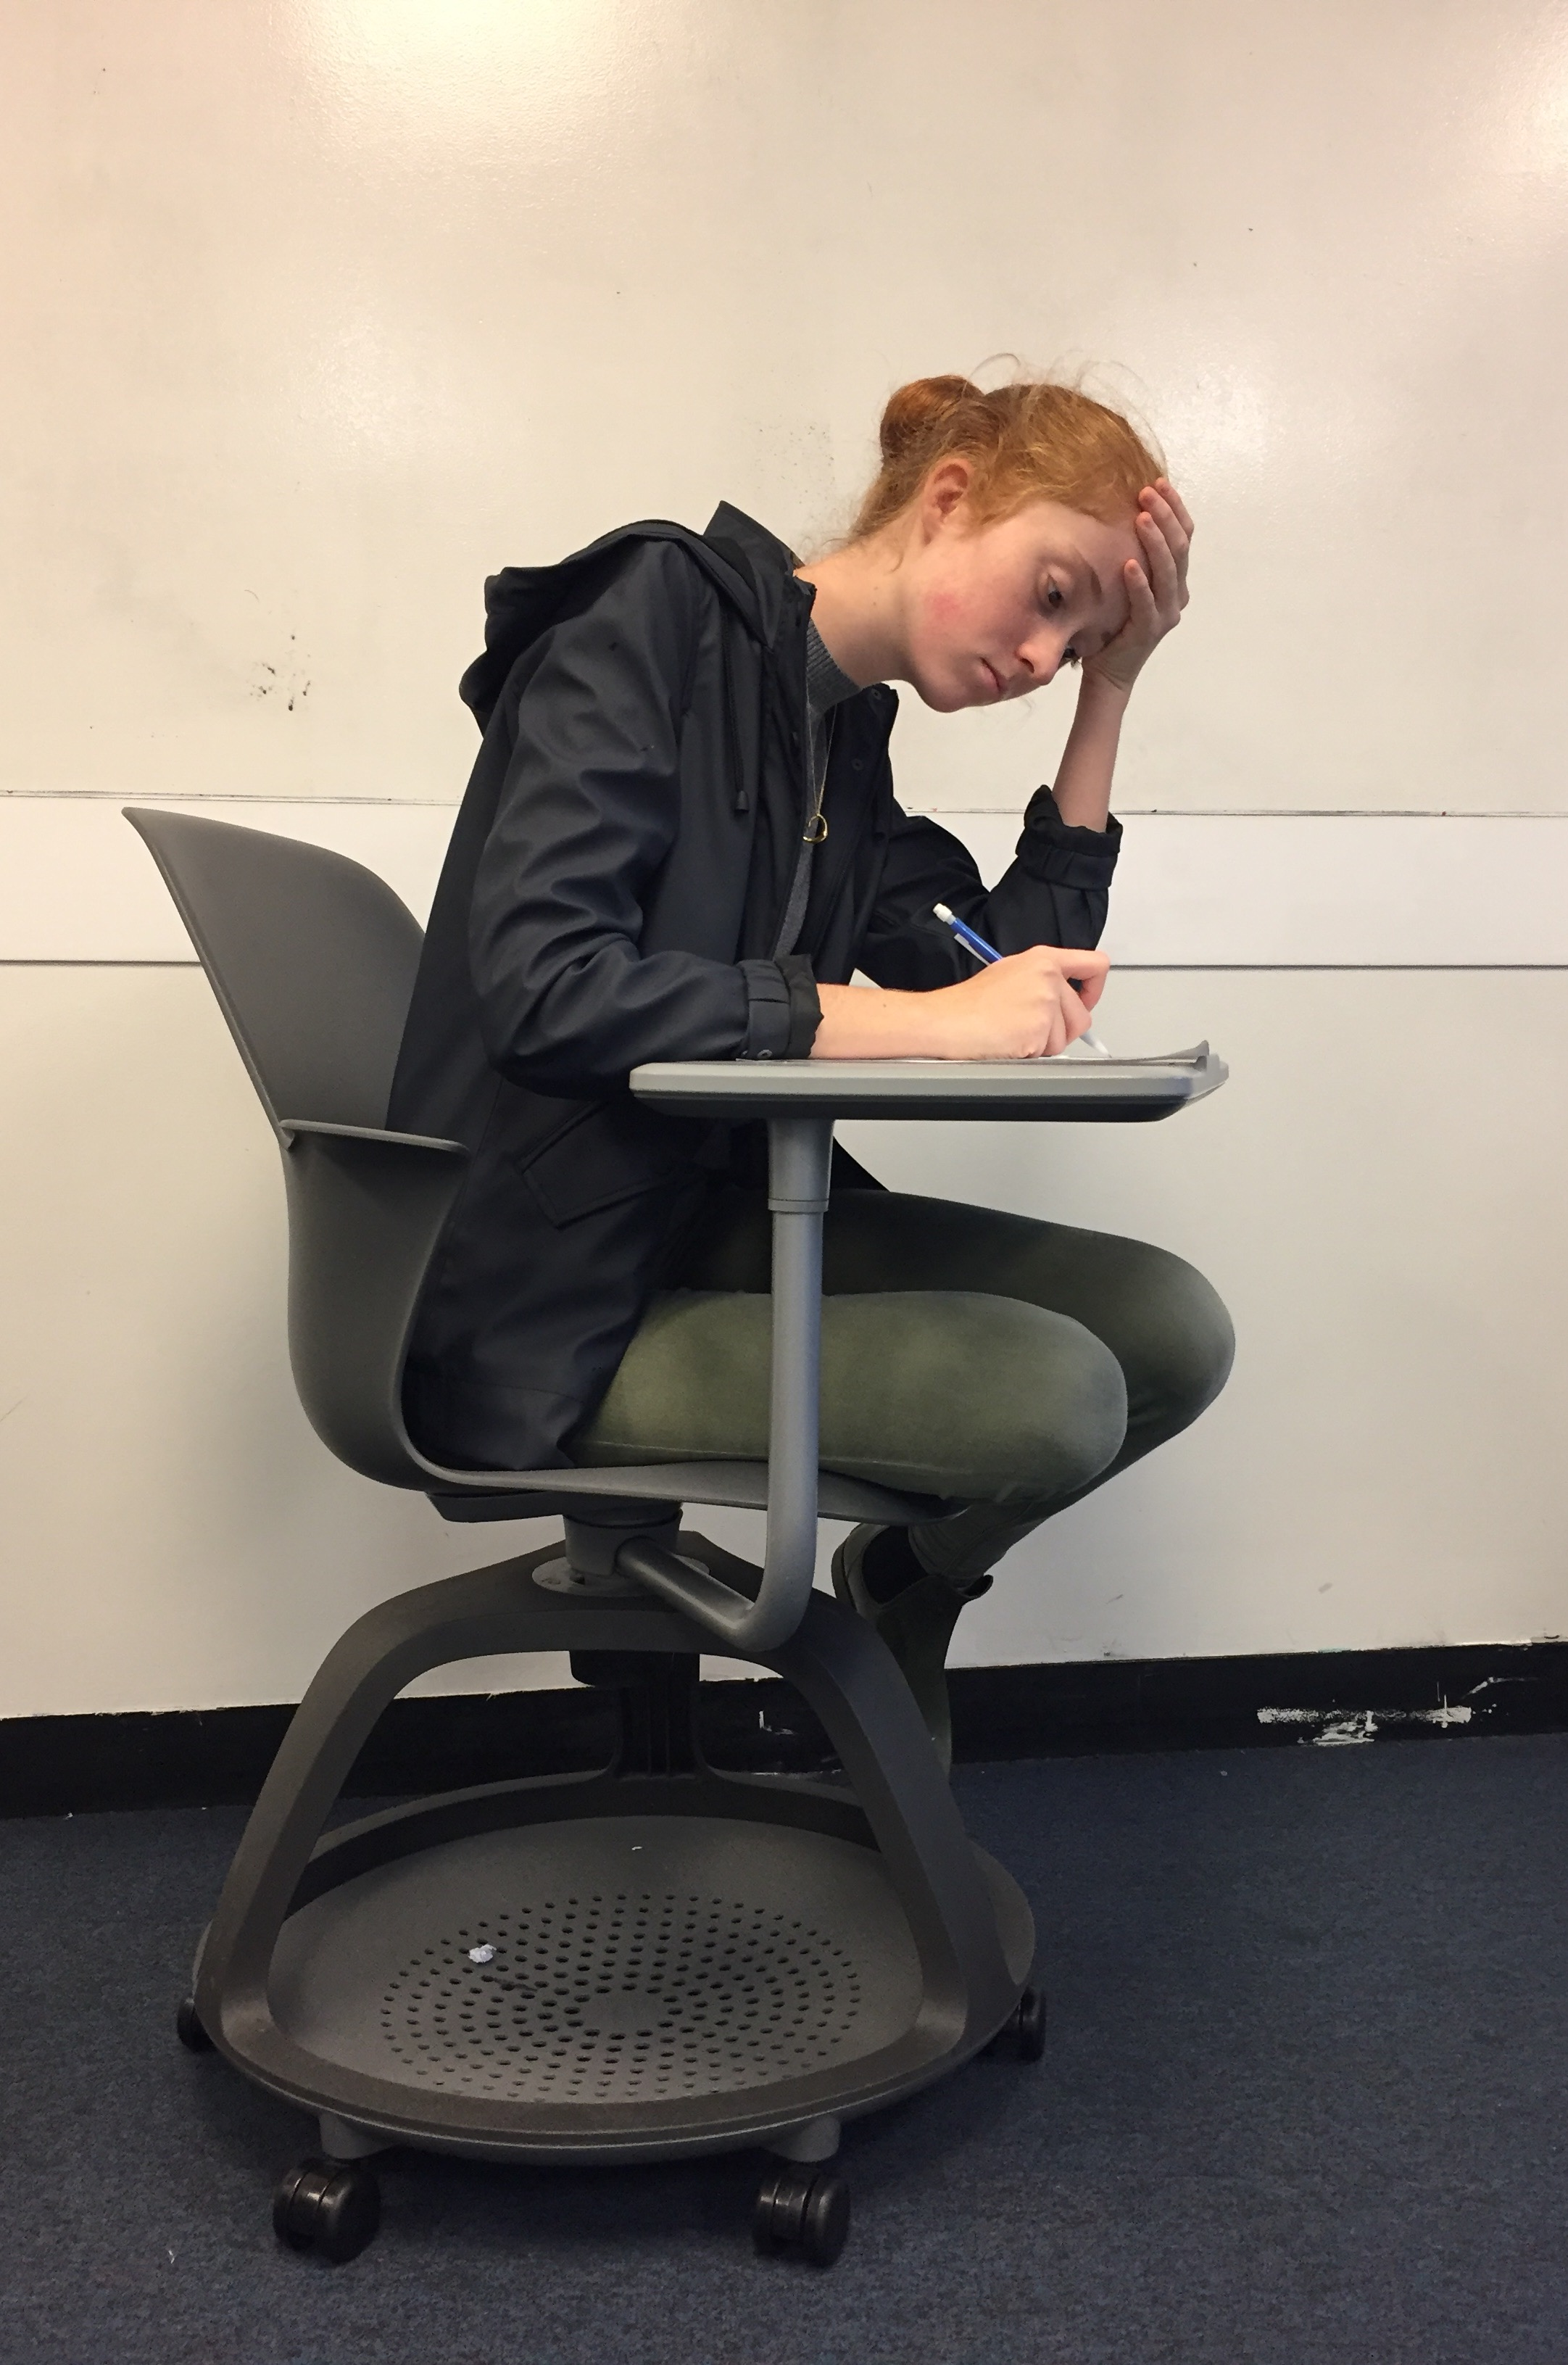 Sophomore Kate Ward writes a creative story for the Kate Chopin Writing Competition. Each story will be judged by the English department and the winner will be named at an assembly later this year.